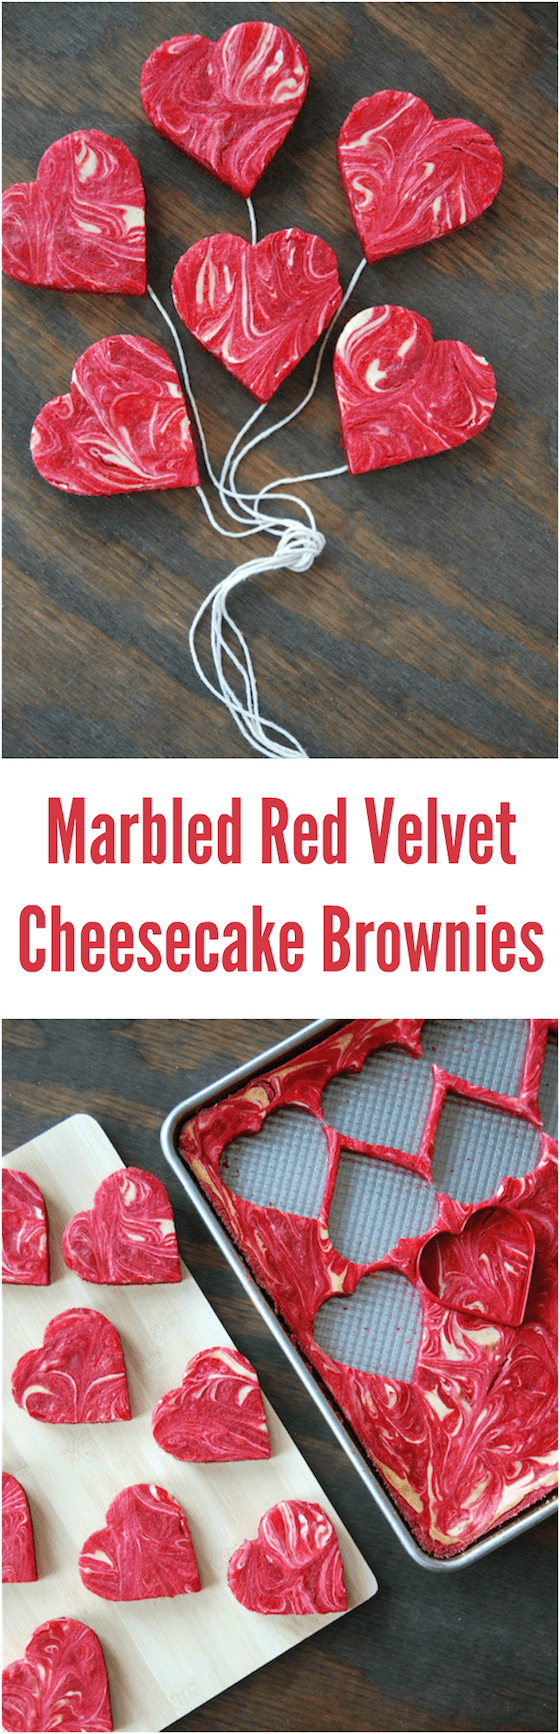 Easy Red Velvet Cheesecake Brownie Recipe